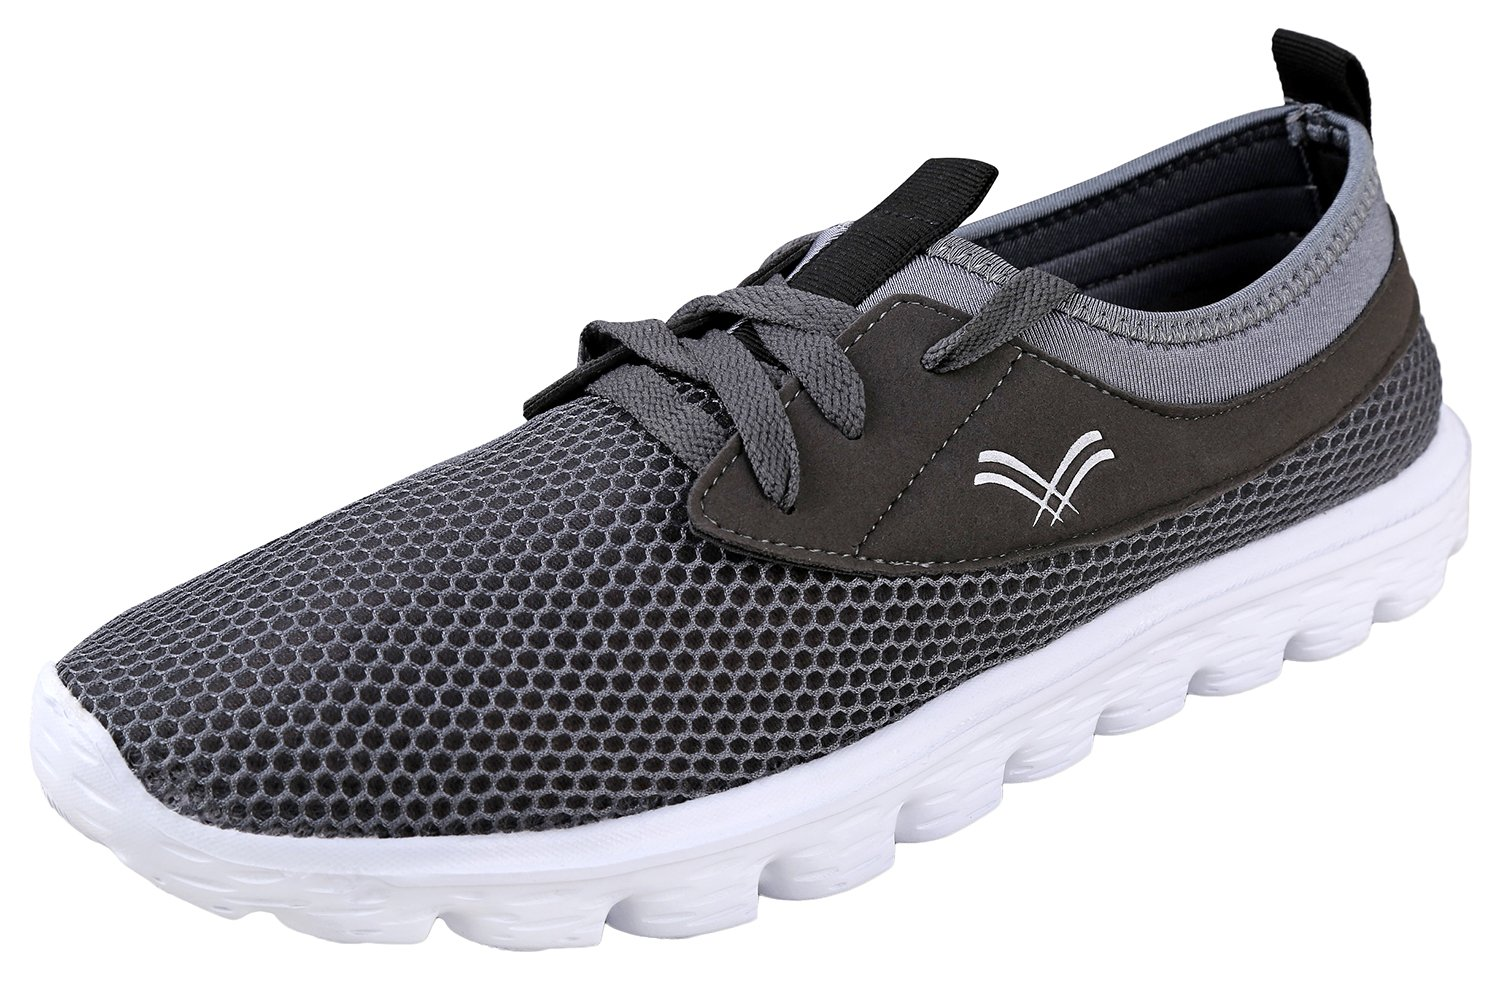 Urban Fox Men's Breeze Lighweight Shoes for Men | Running Shoes for Men | Casual Shoes | Walking Shoes for Men 12 D(M) US|Grey/White